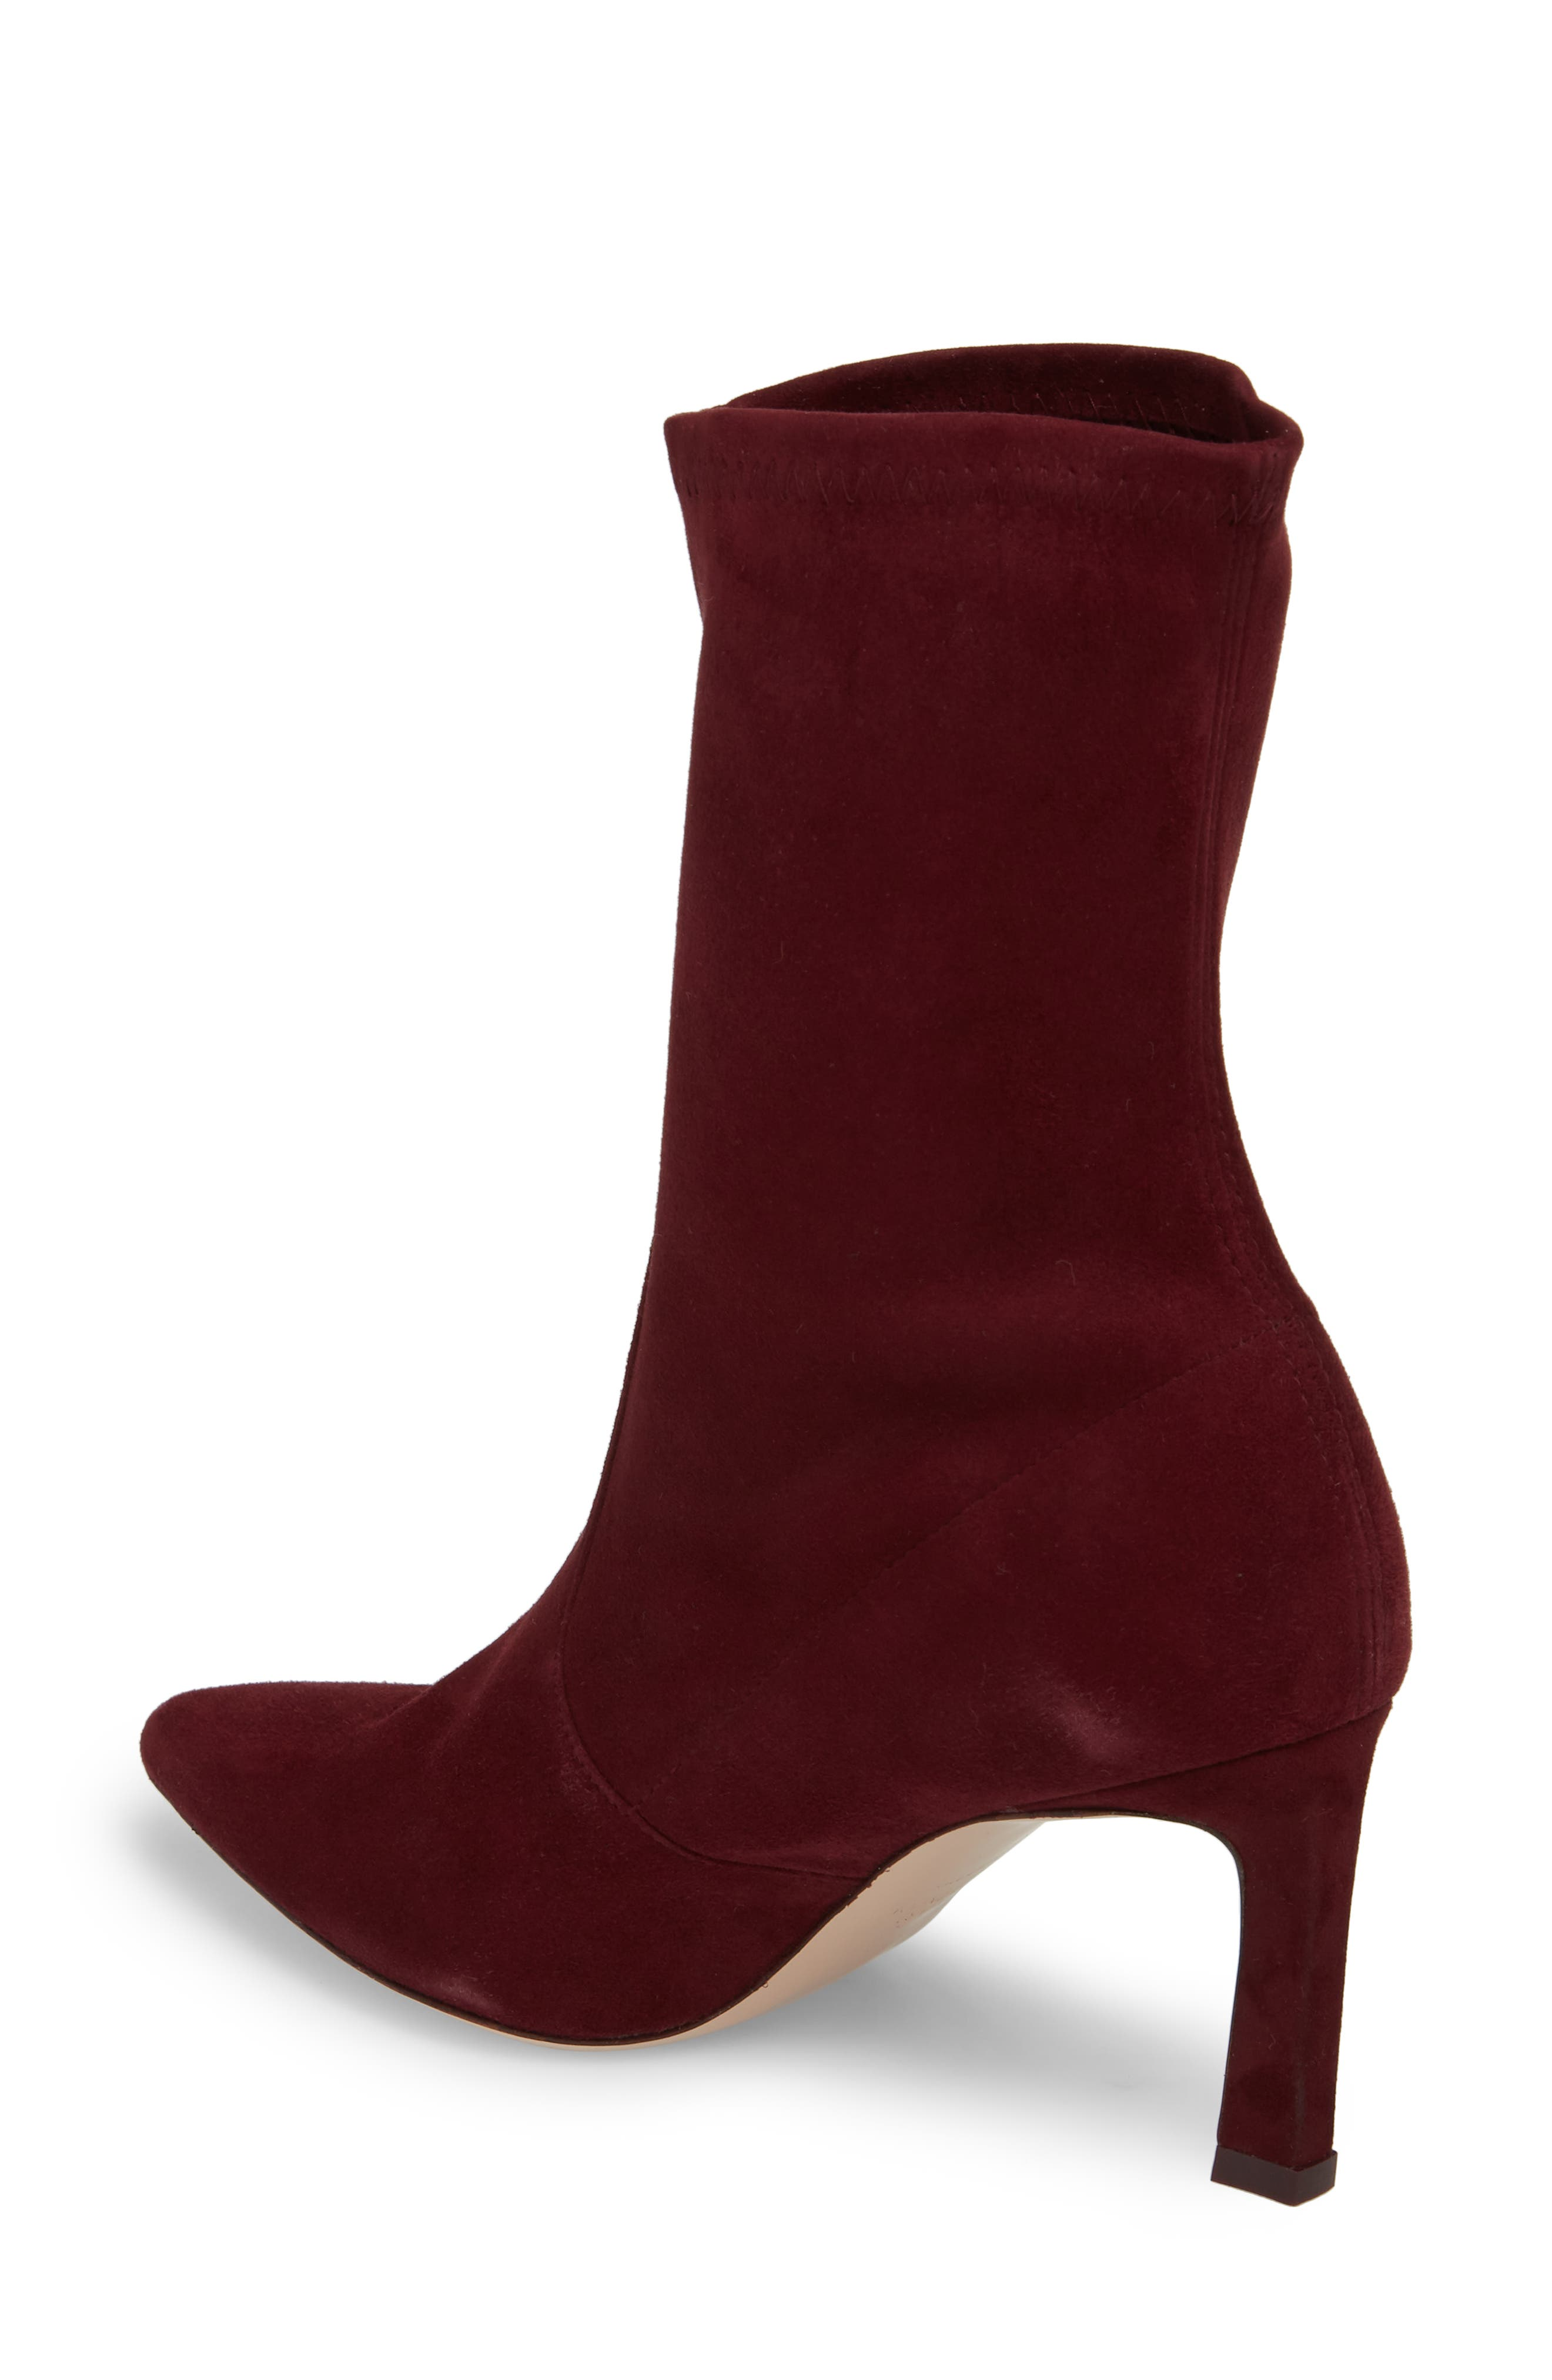 Rapture 75 Bootie,                             Alternate thumbnail 2, color,                             Cabernet Suede